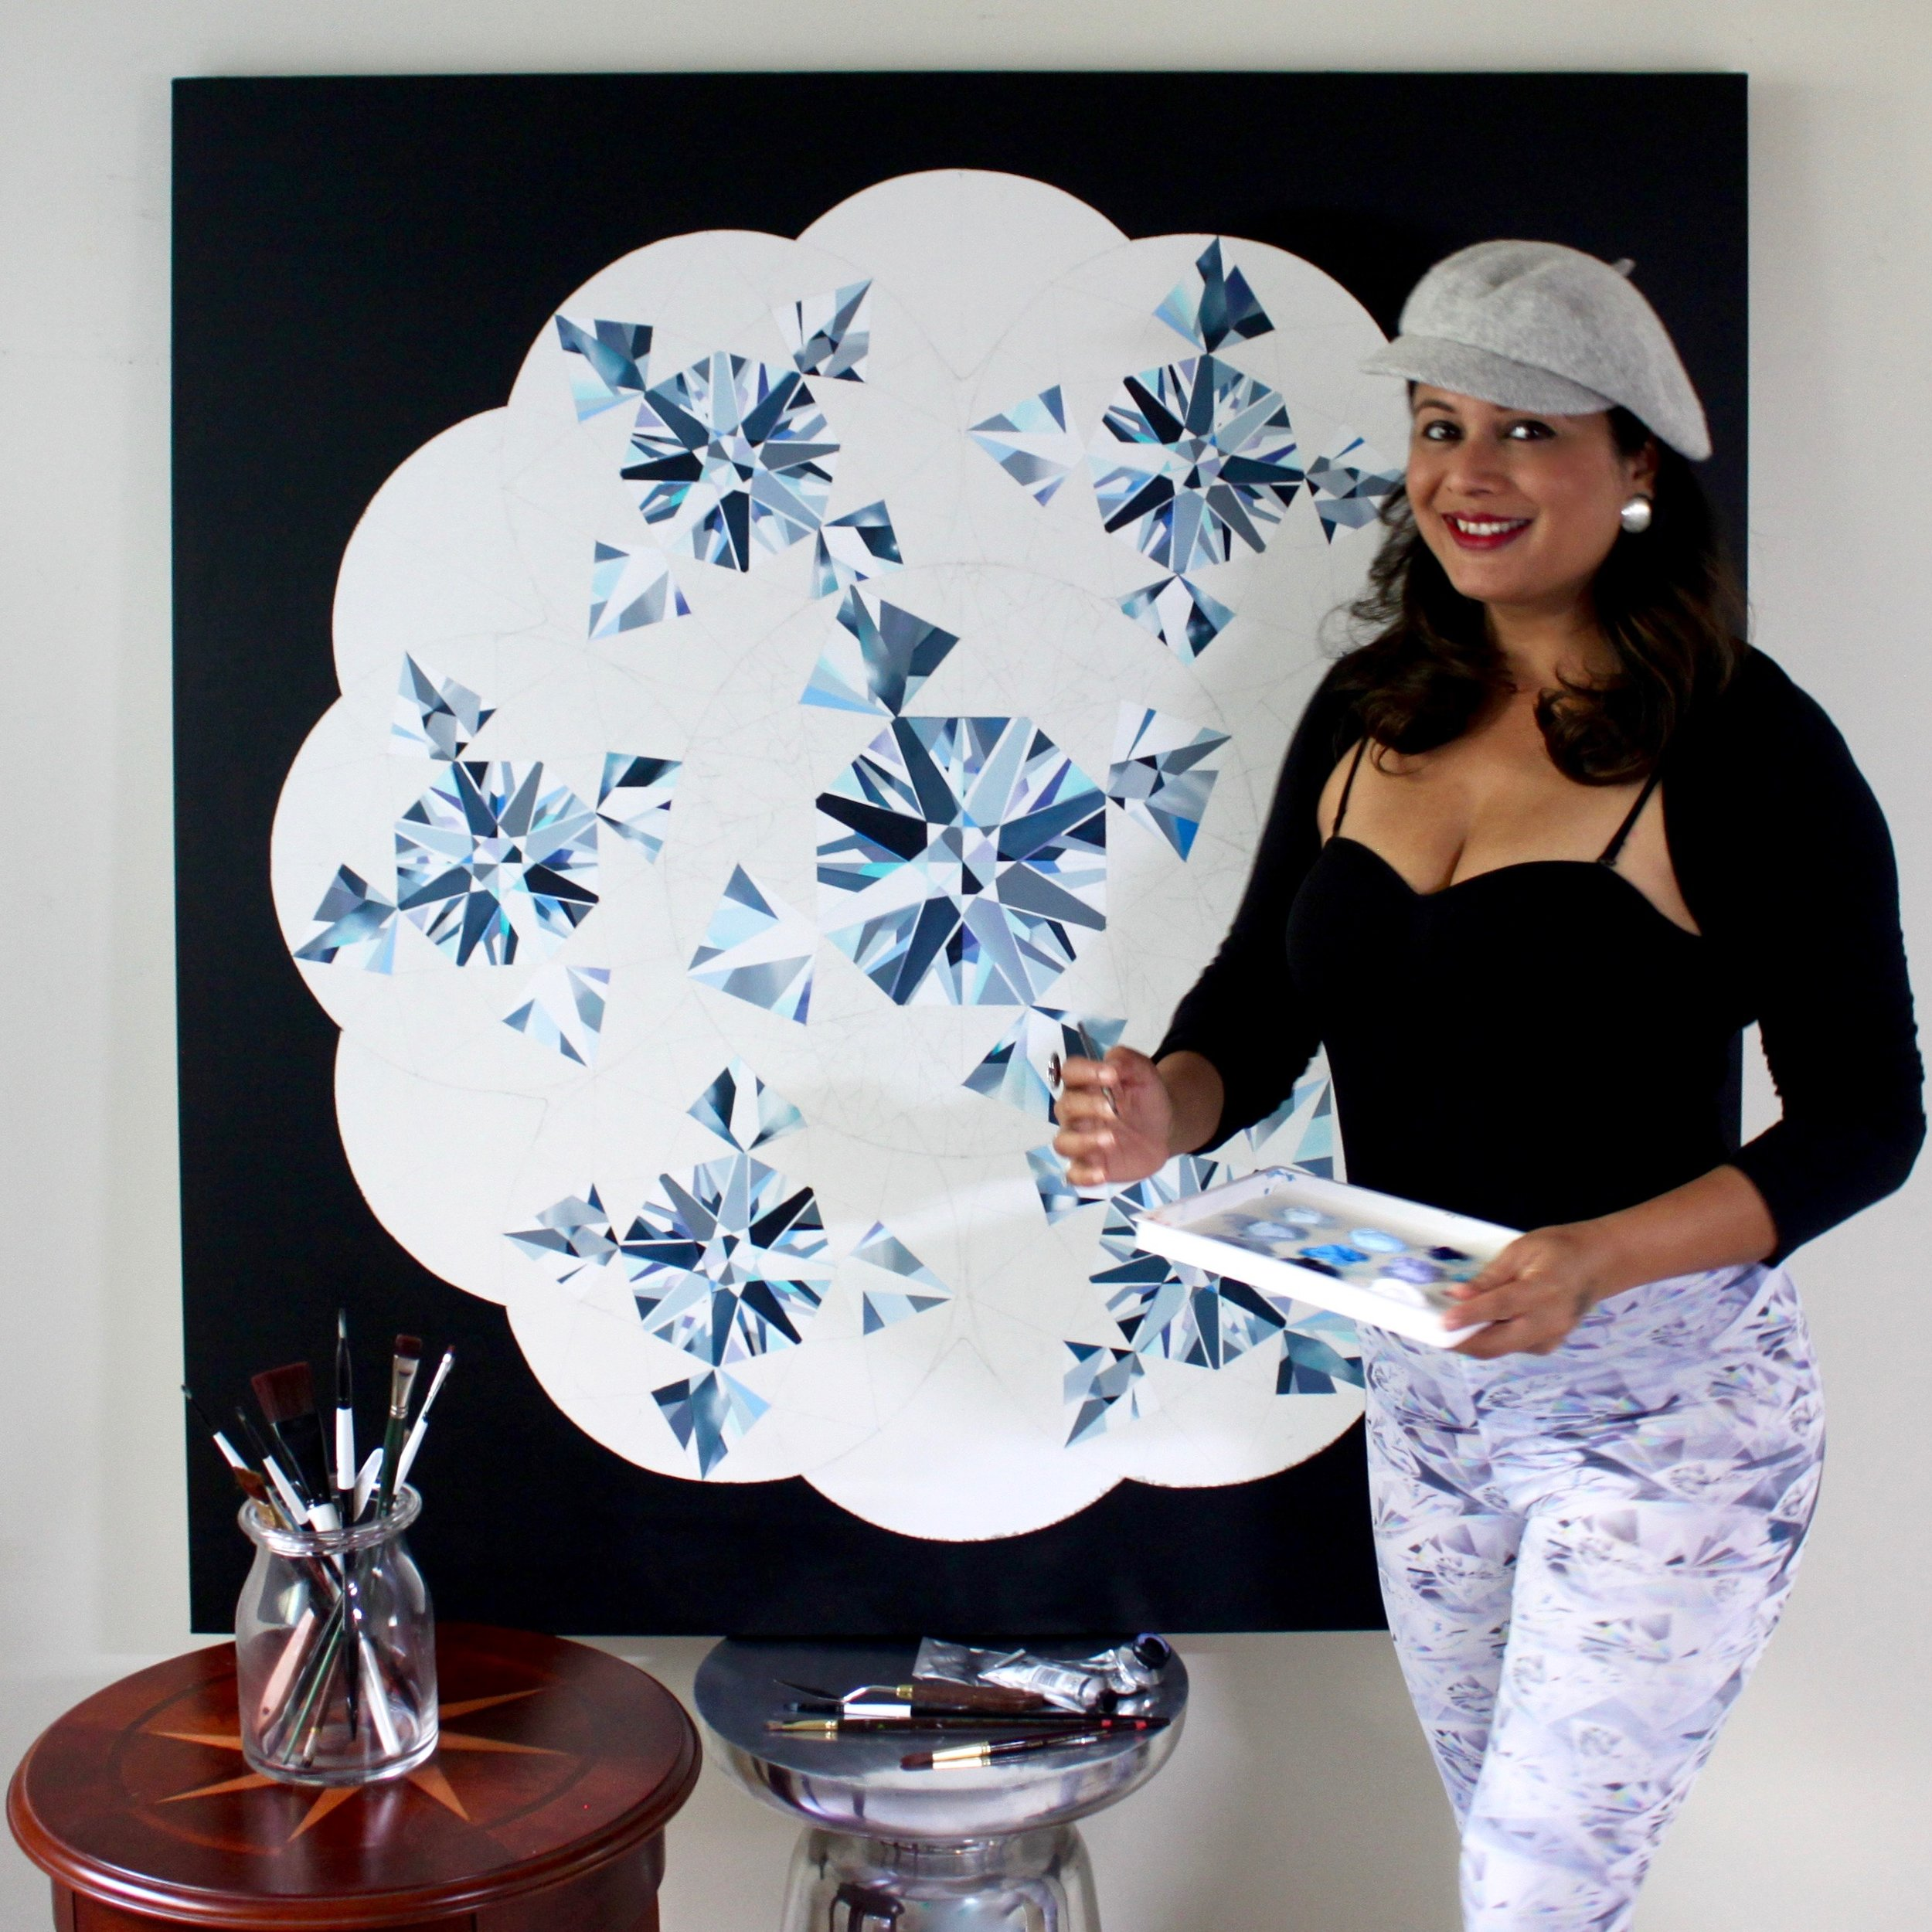 Magnificent Seven (diamonds) in this painting! To me it looked like a dazzling Kaleidoscope. Making of the 4-feet Coronet Diamond Painting by Reena Ahluwalia. ©Reena Ahluwalia